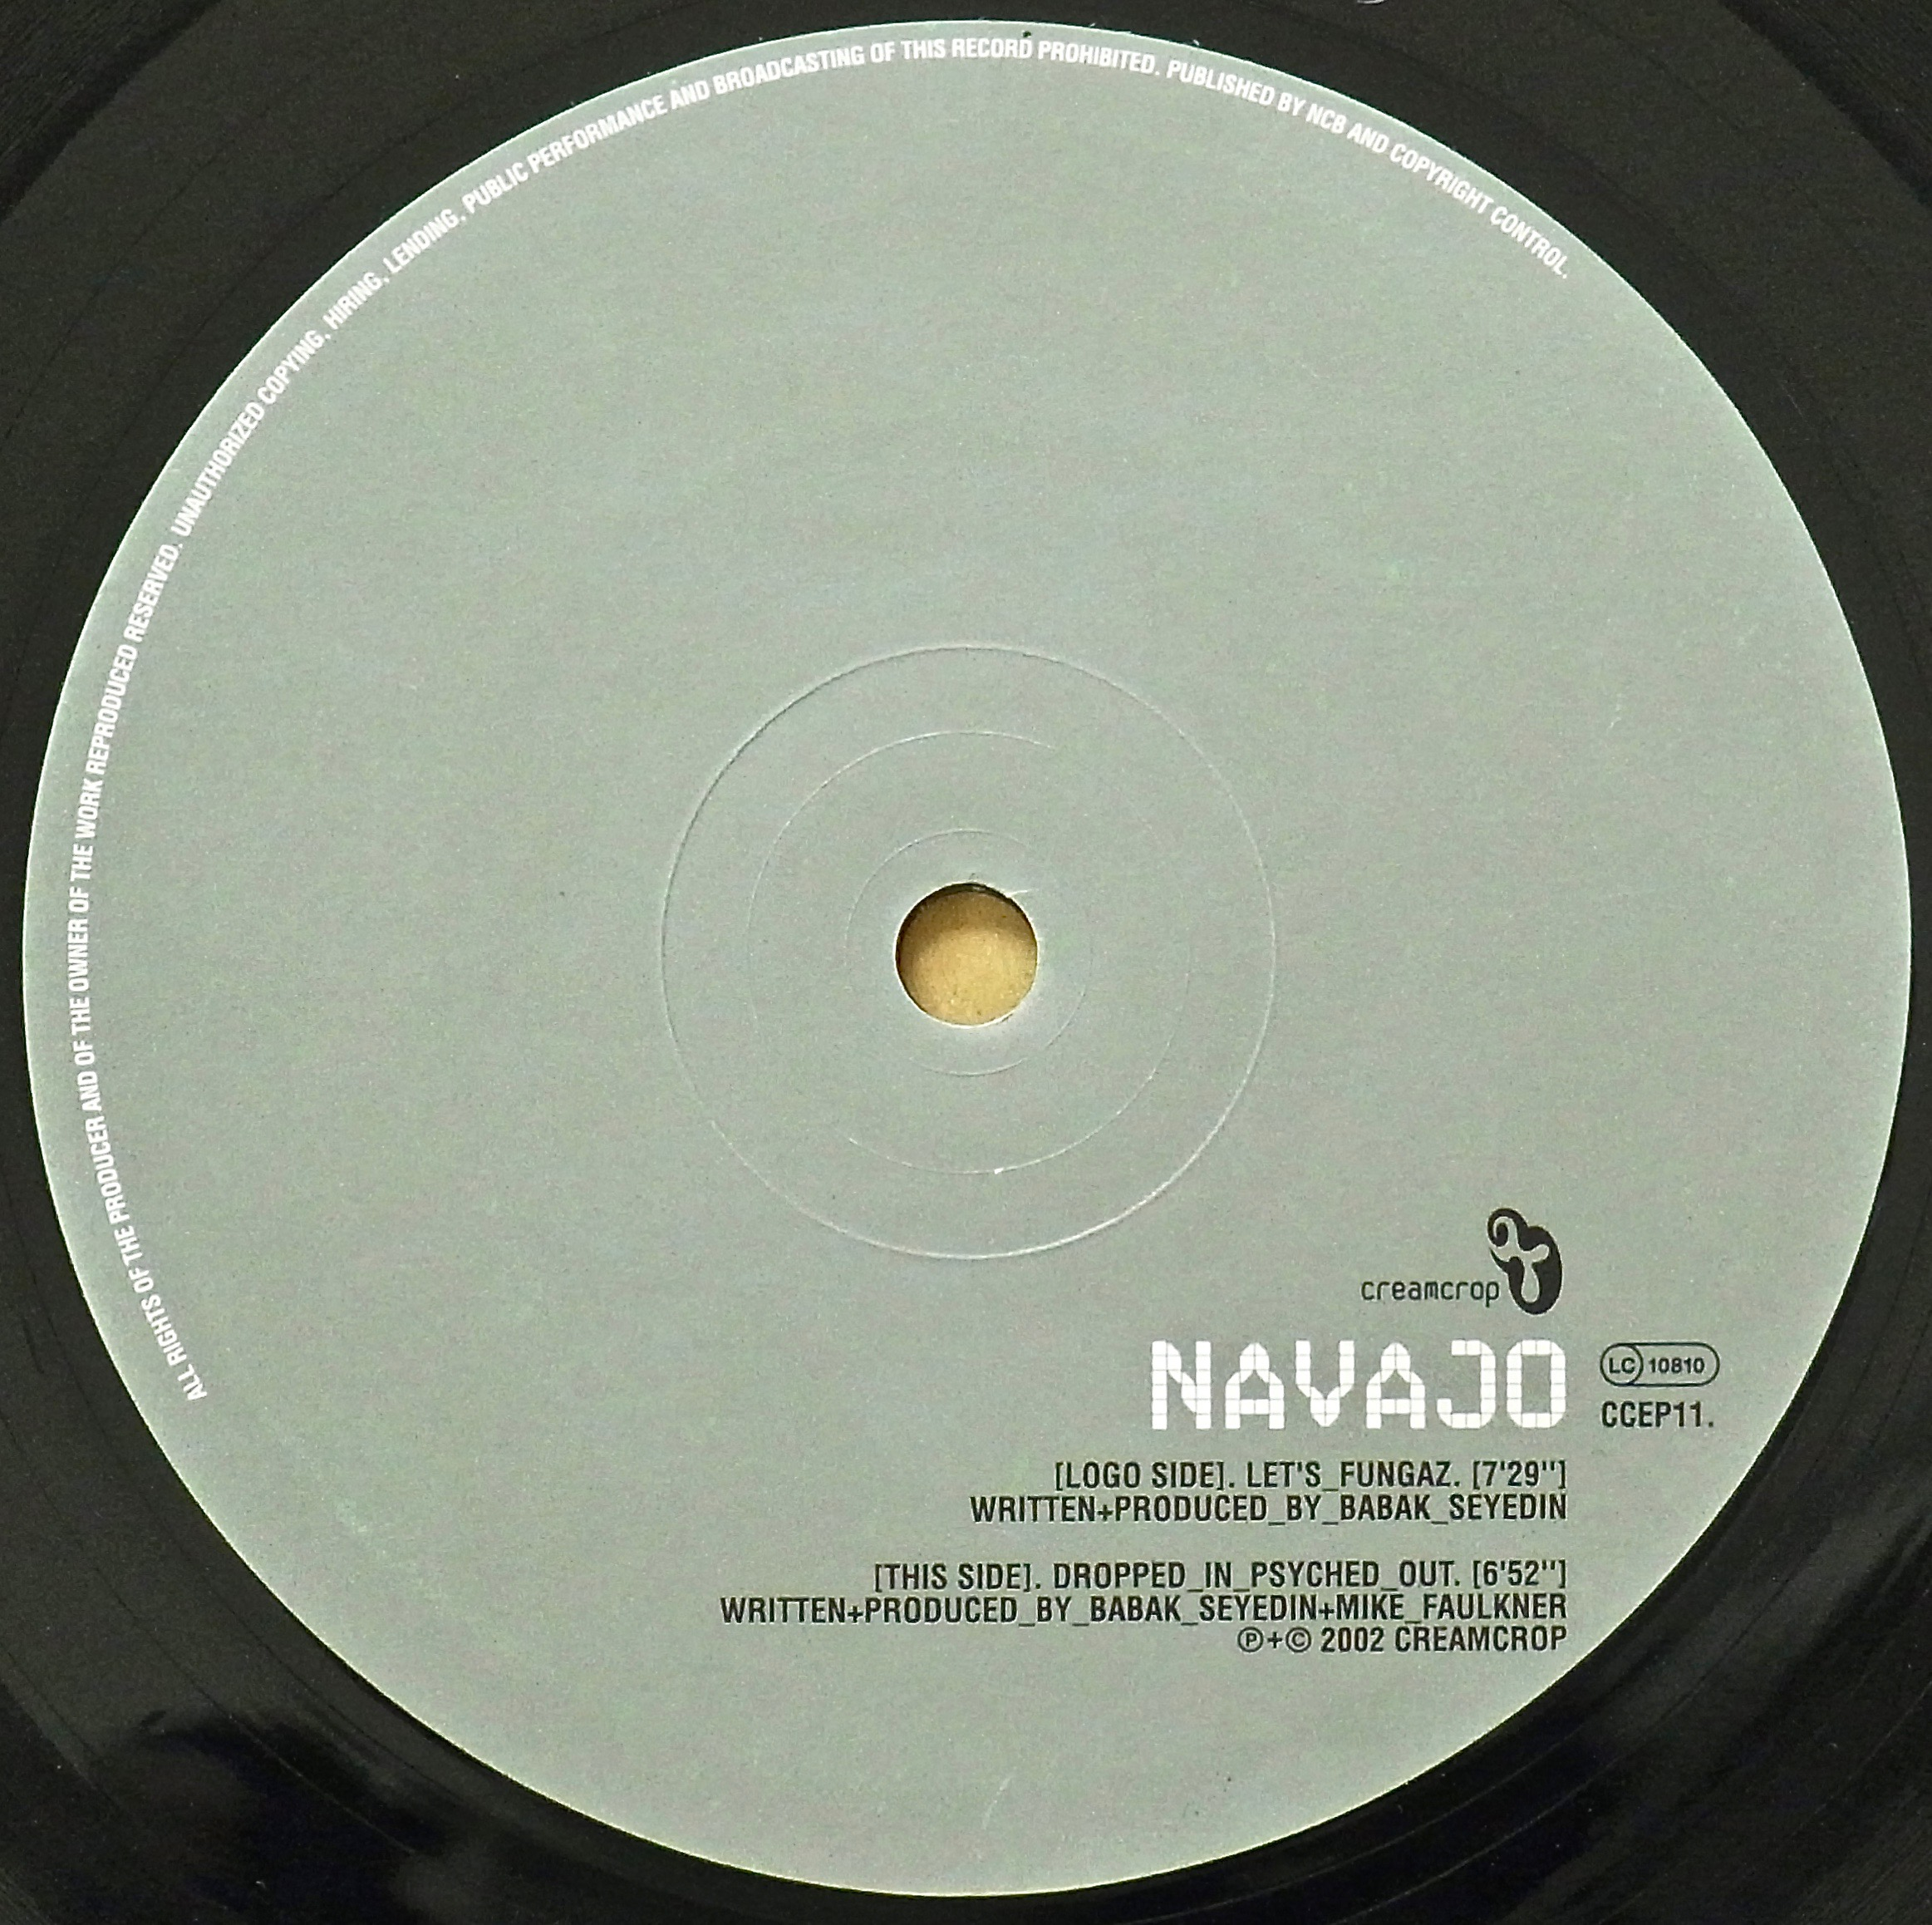 NAVAJO / Let's Fungaz ・ Dropped In Psyched Out